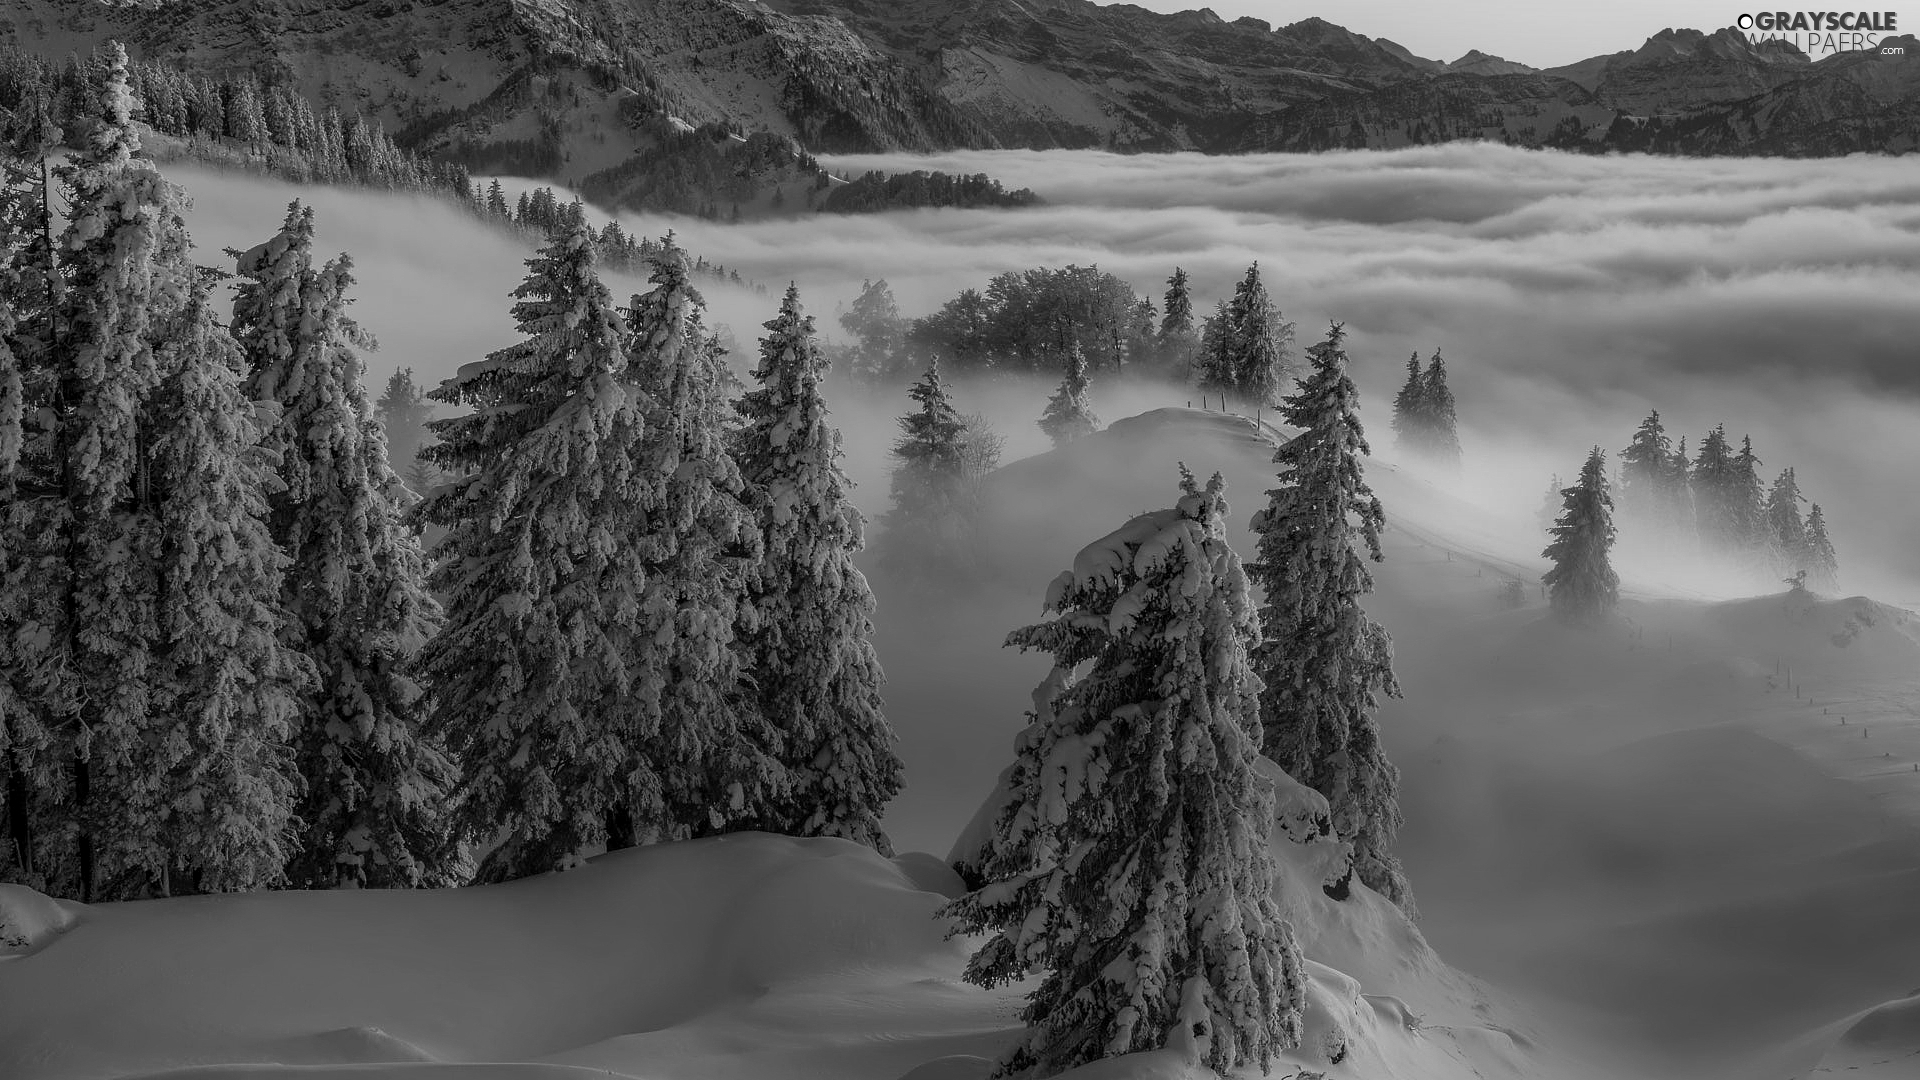 viewes, winter, Mountains, Fog, Spruces, trees